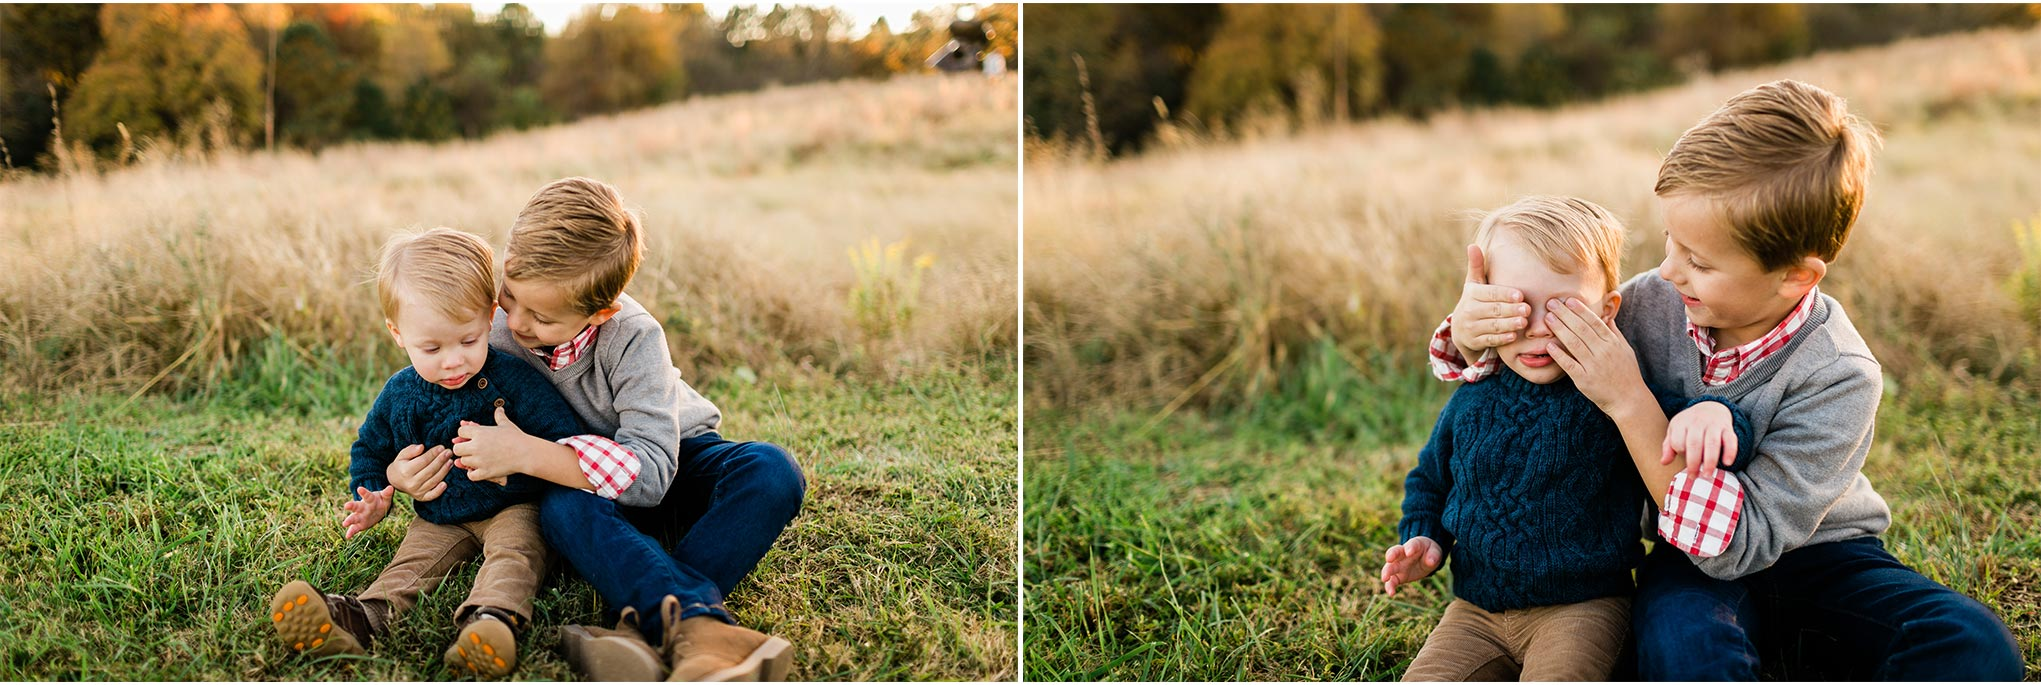 Outdoor sibling photo at NCMA | Raleigh Family Photographer | By G. Lin Photography